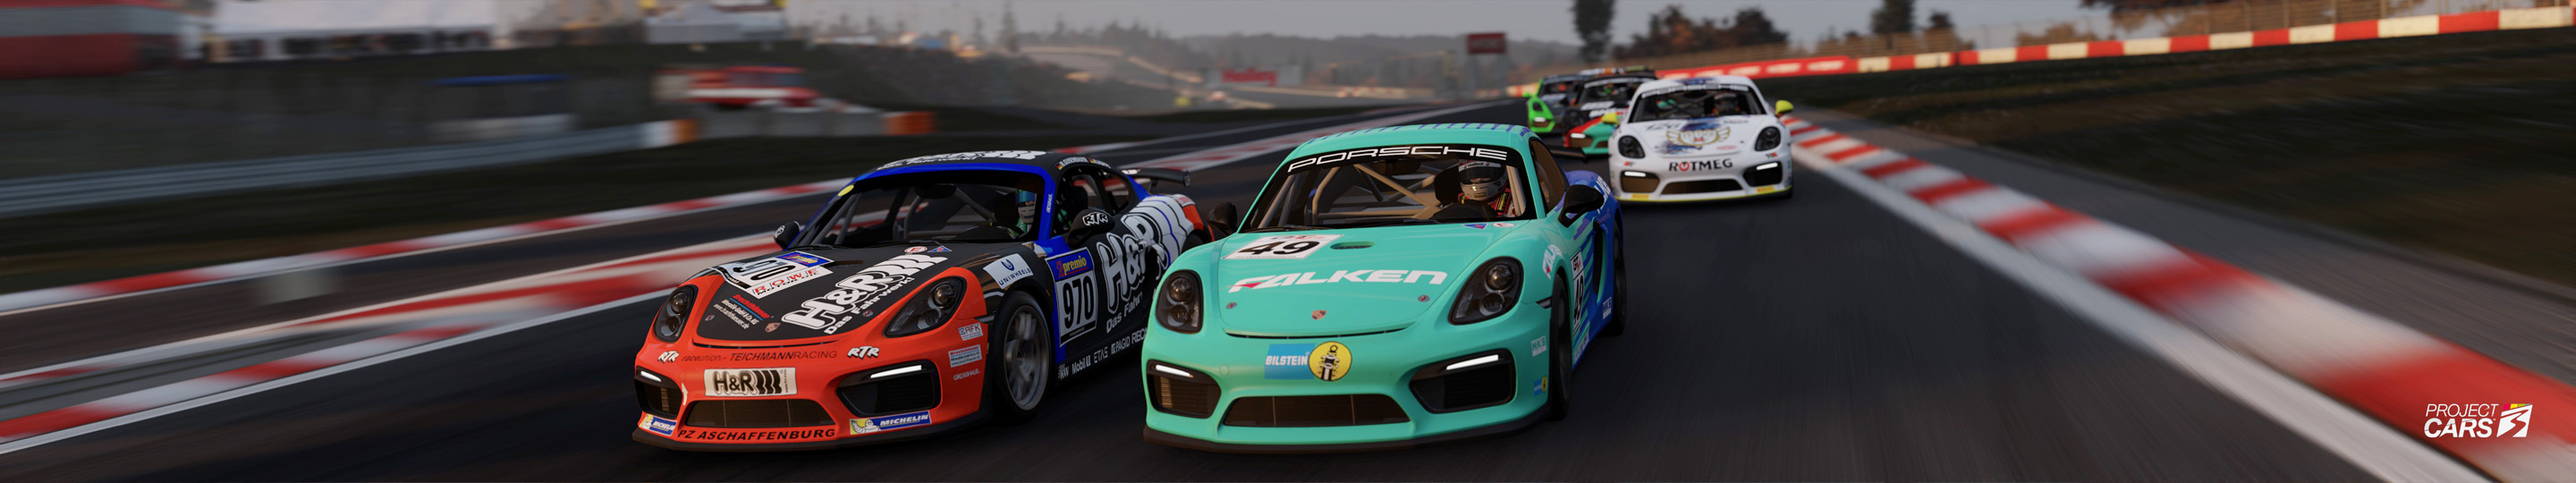 0 PROJECT CARS 3 PORSCHE Cayman GT4 at NURBURGRING copy.jpg